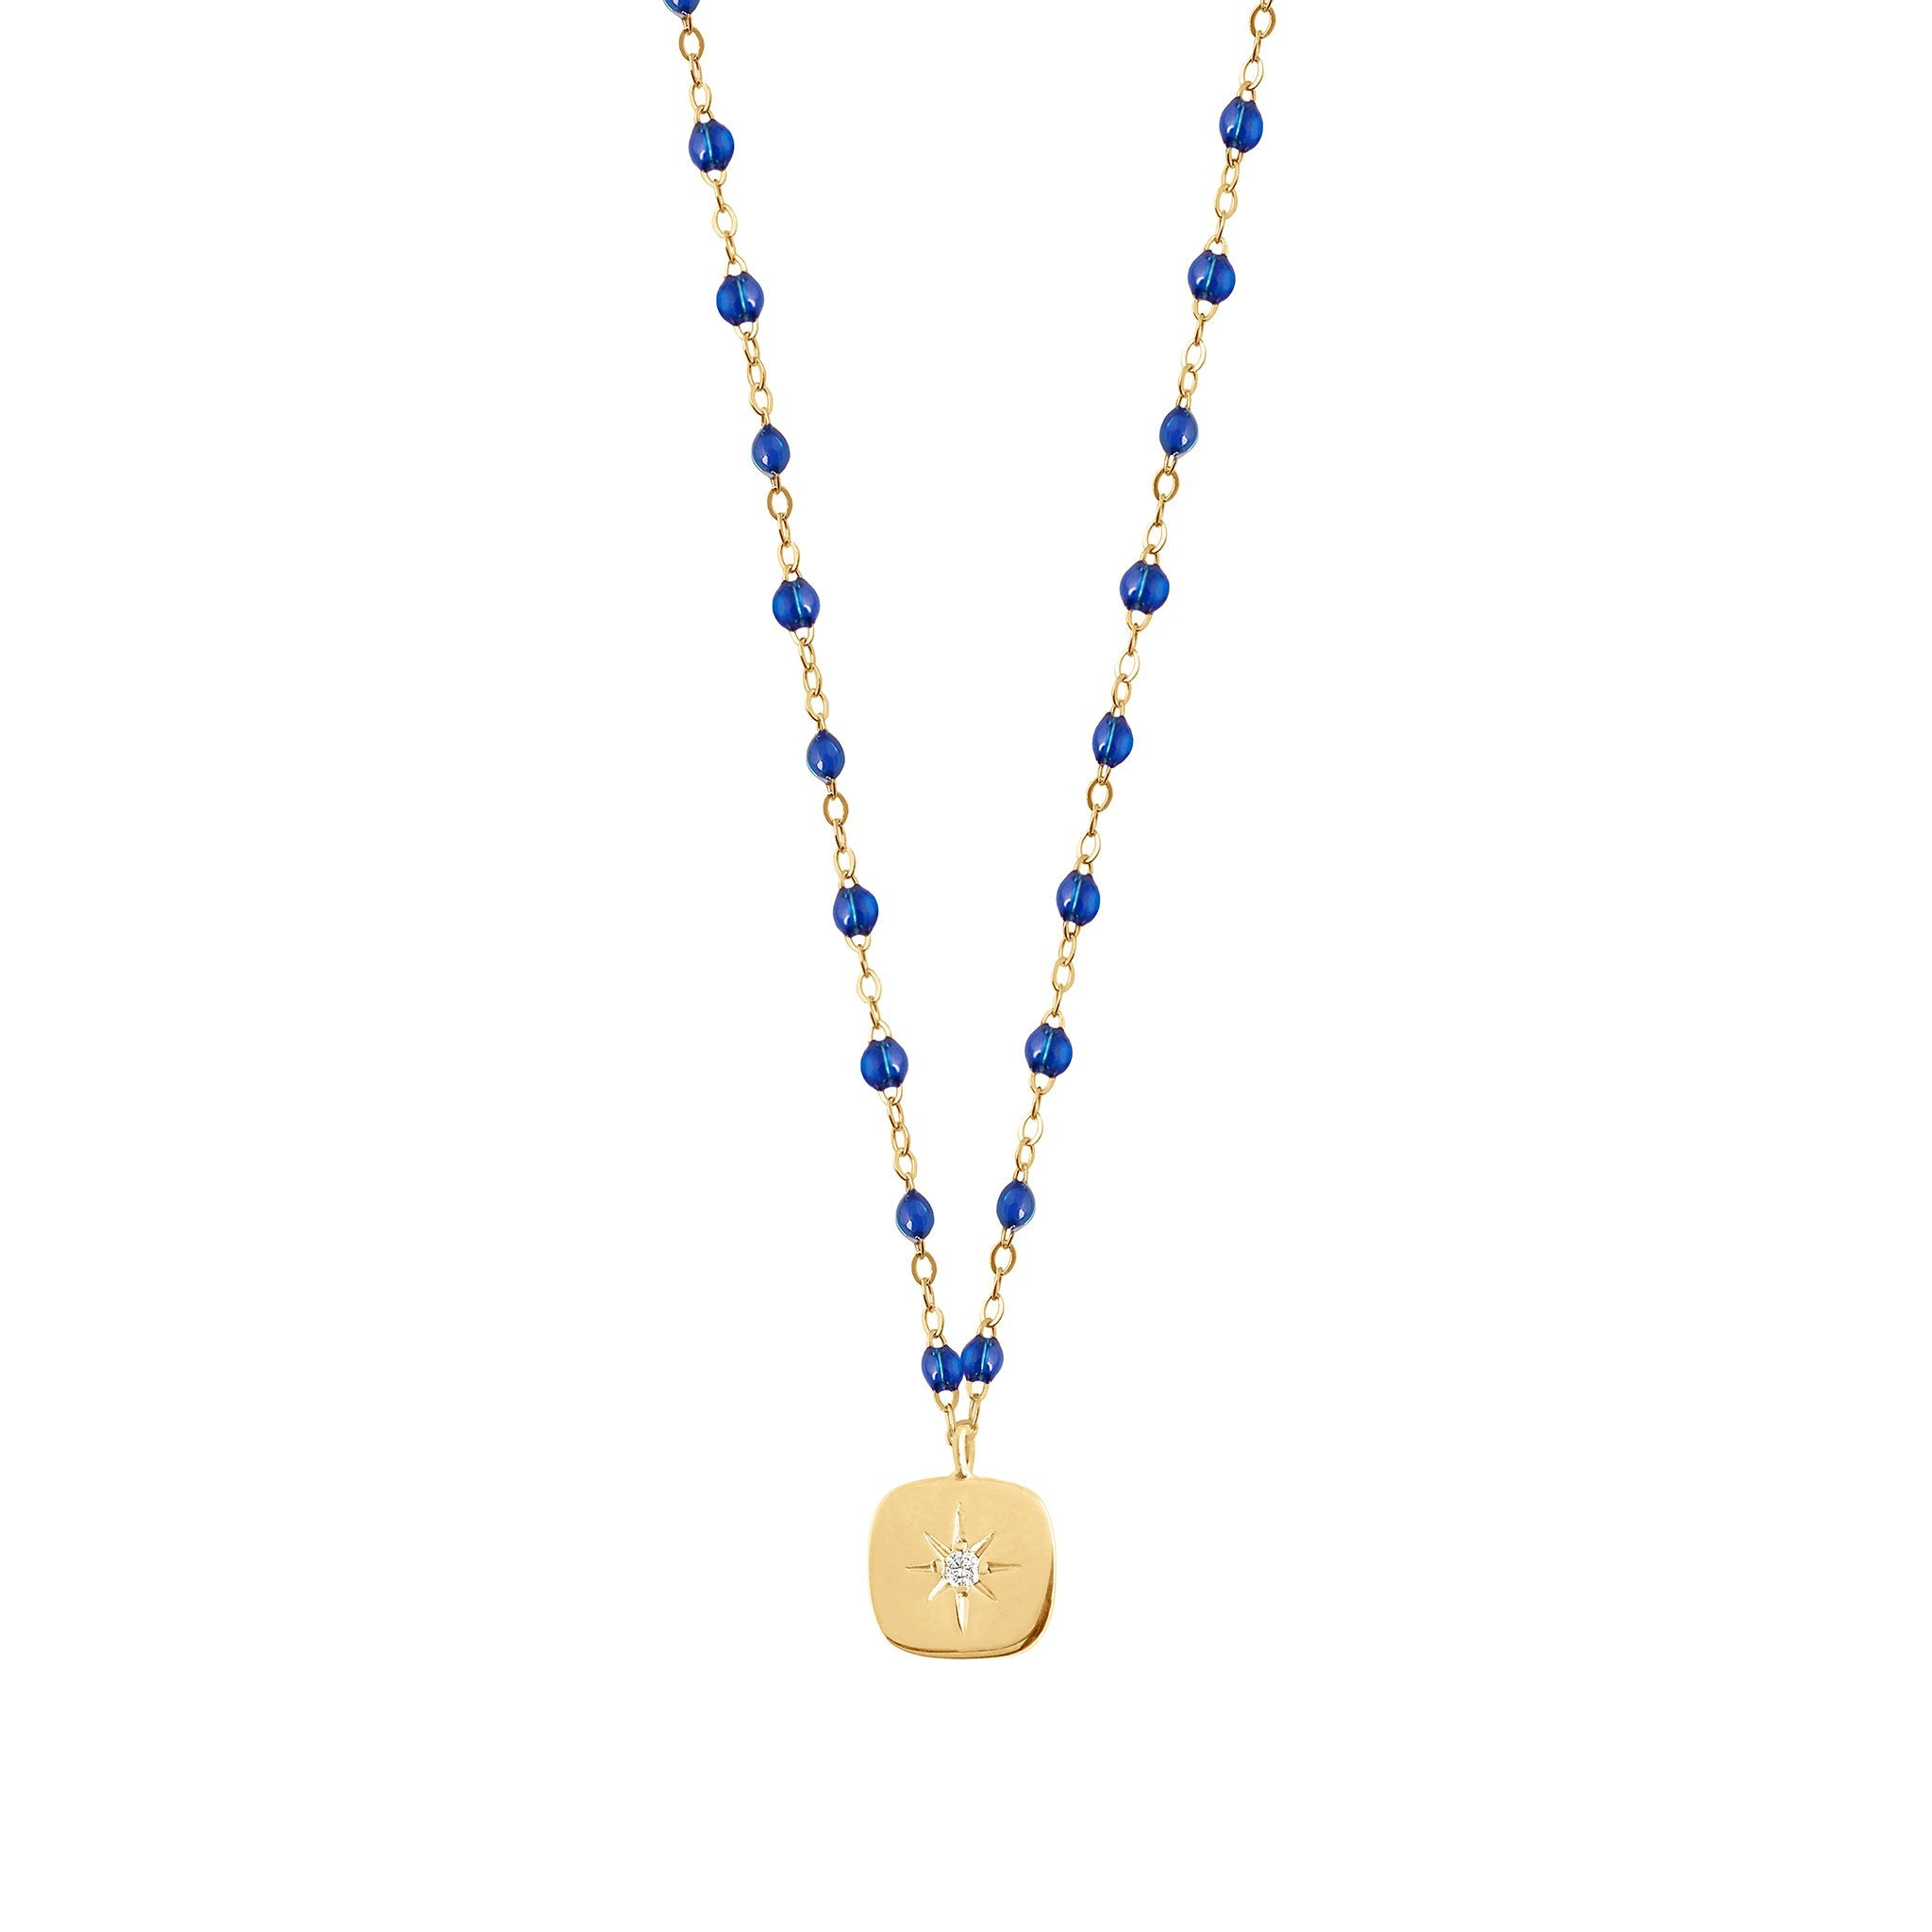 Gigi Clozeau - Miss Gigi Lapis diamond necklace, Yellow Gold, 16.5""